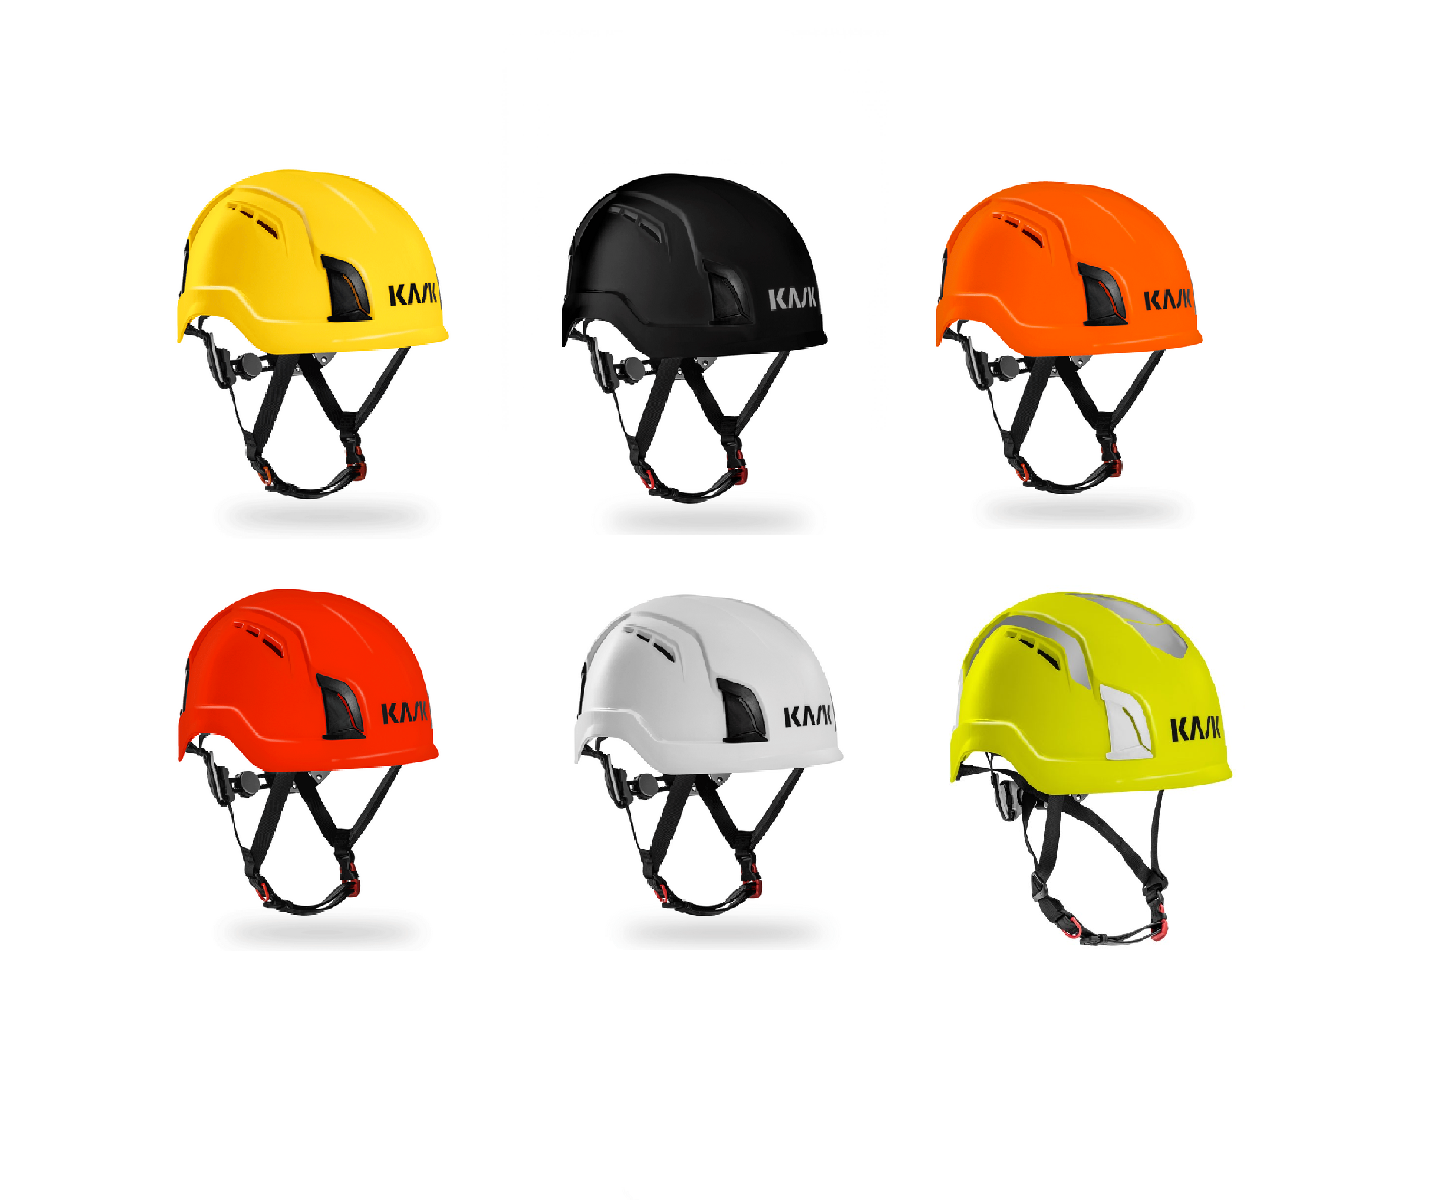 Rope Access Rock Climbing And Tree Surgery Helmet Kask super plasma